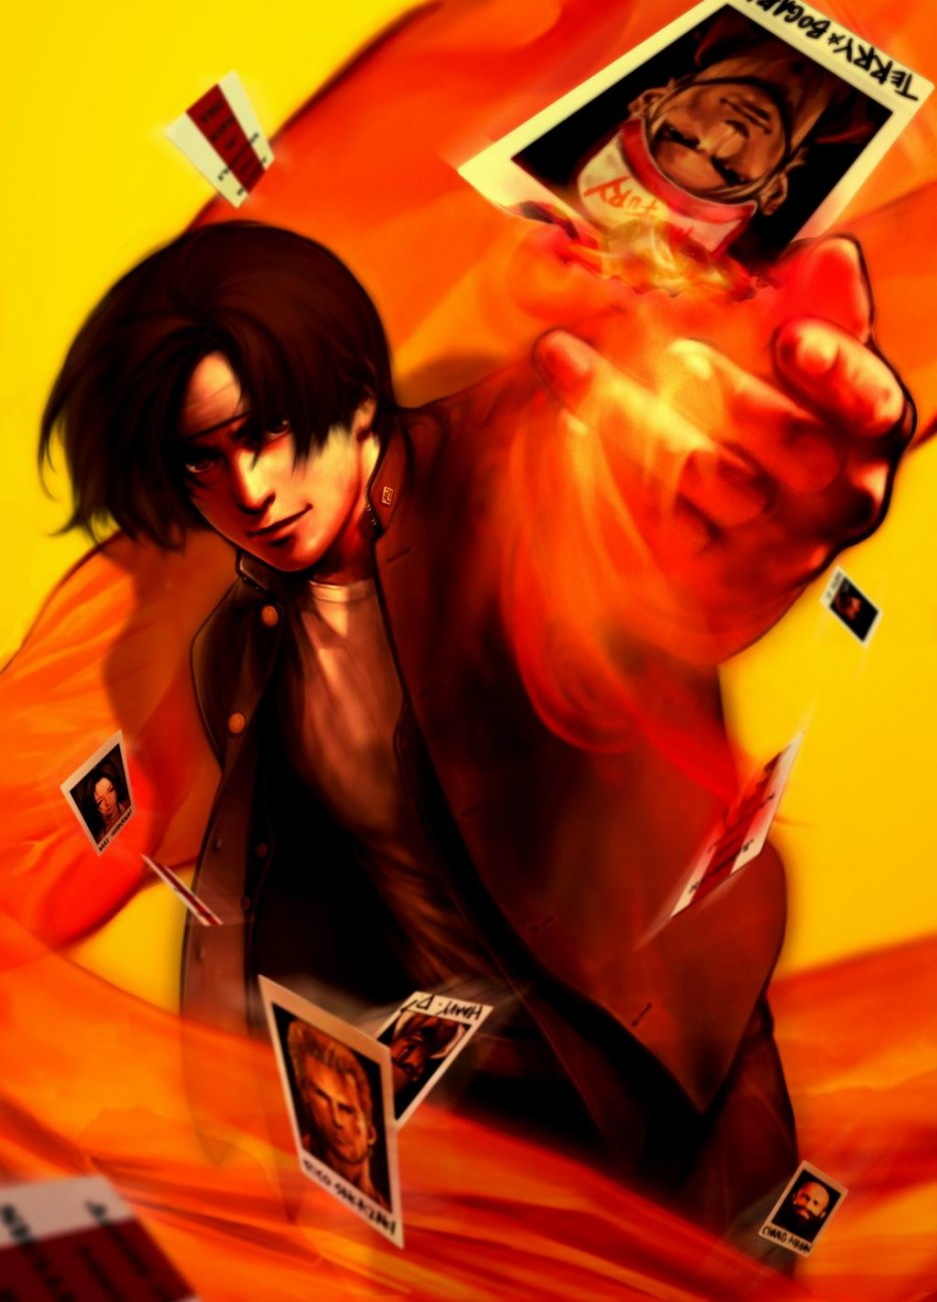 The King Of Fighters 94 Re Bout TFG Profile